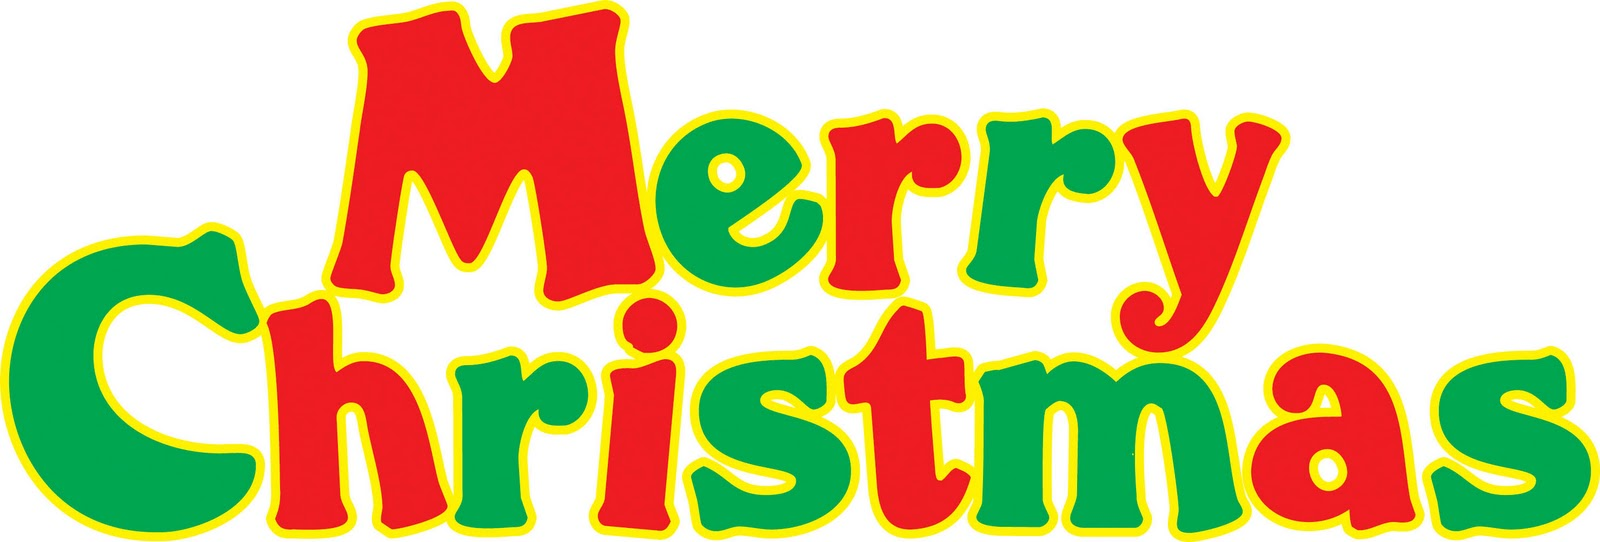 1600x542 Sign Clipart Merry Christmas